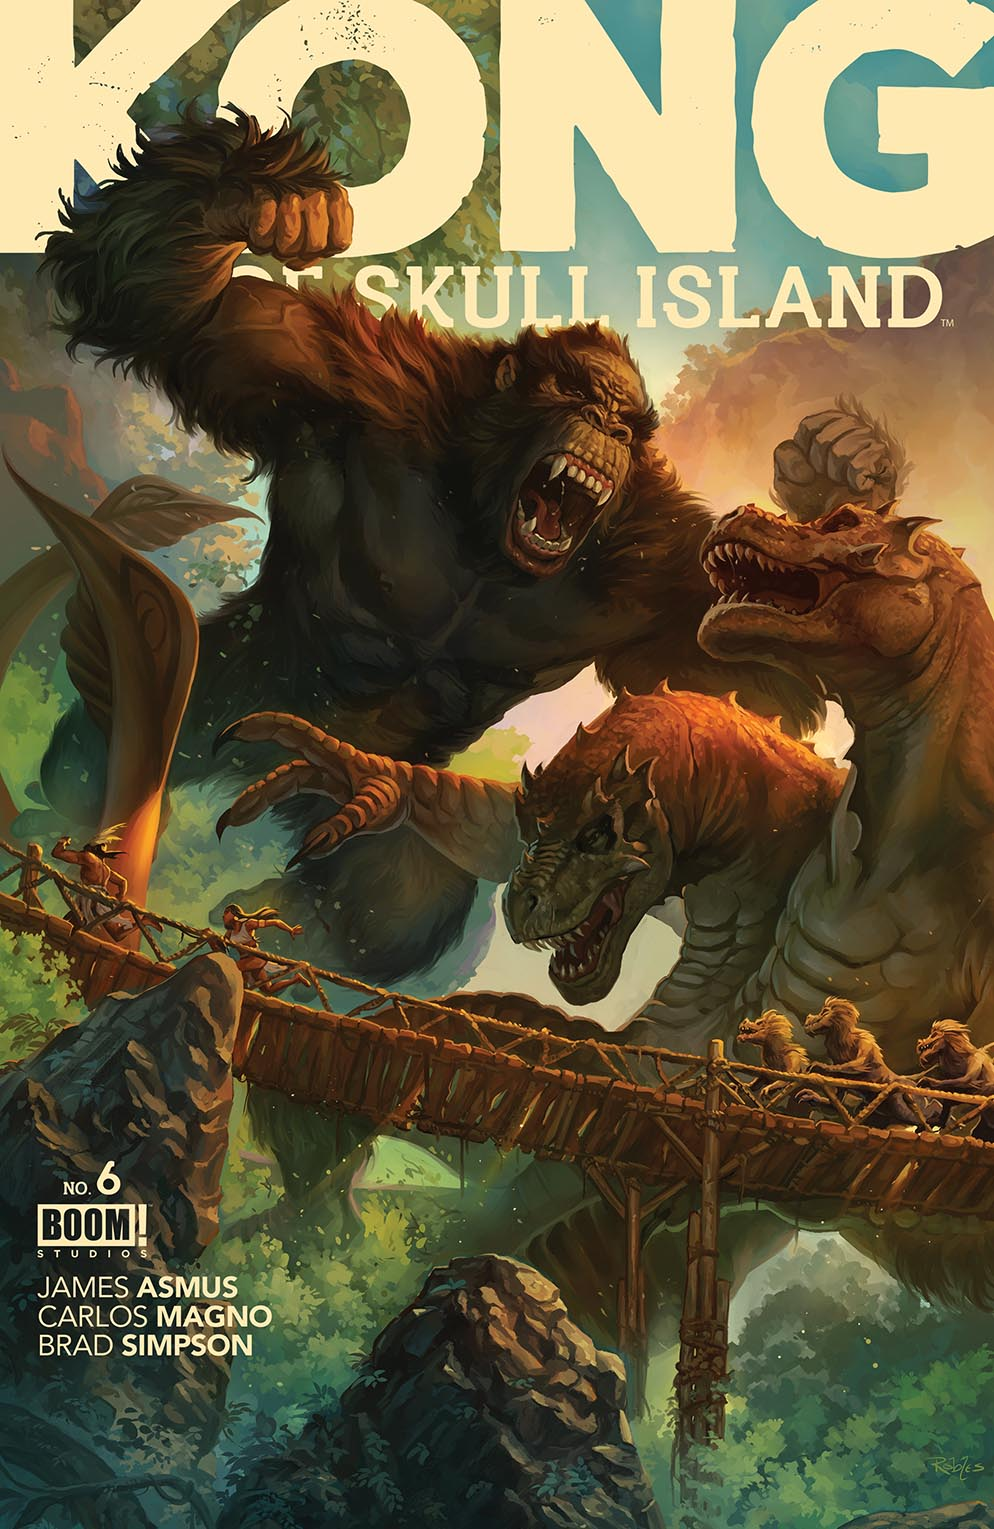 KongSkullIsland_006_Main_PRESS.jpg